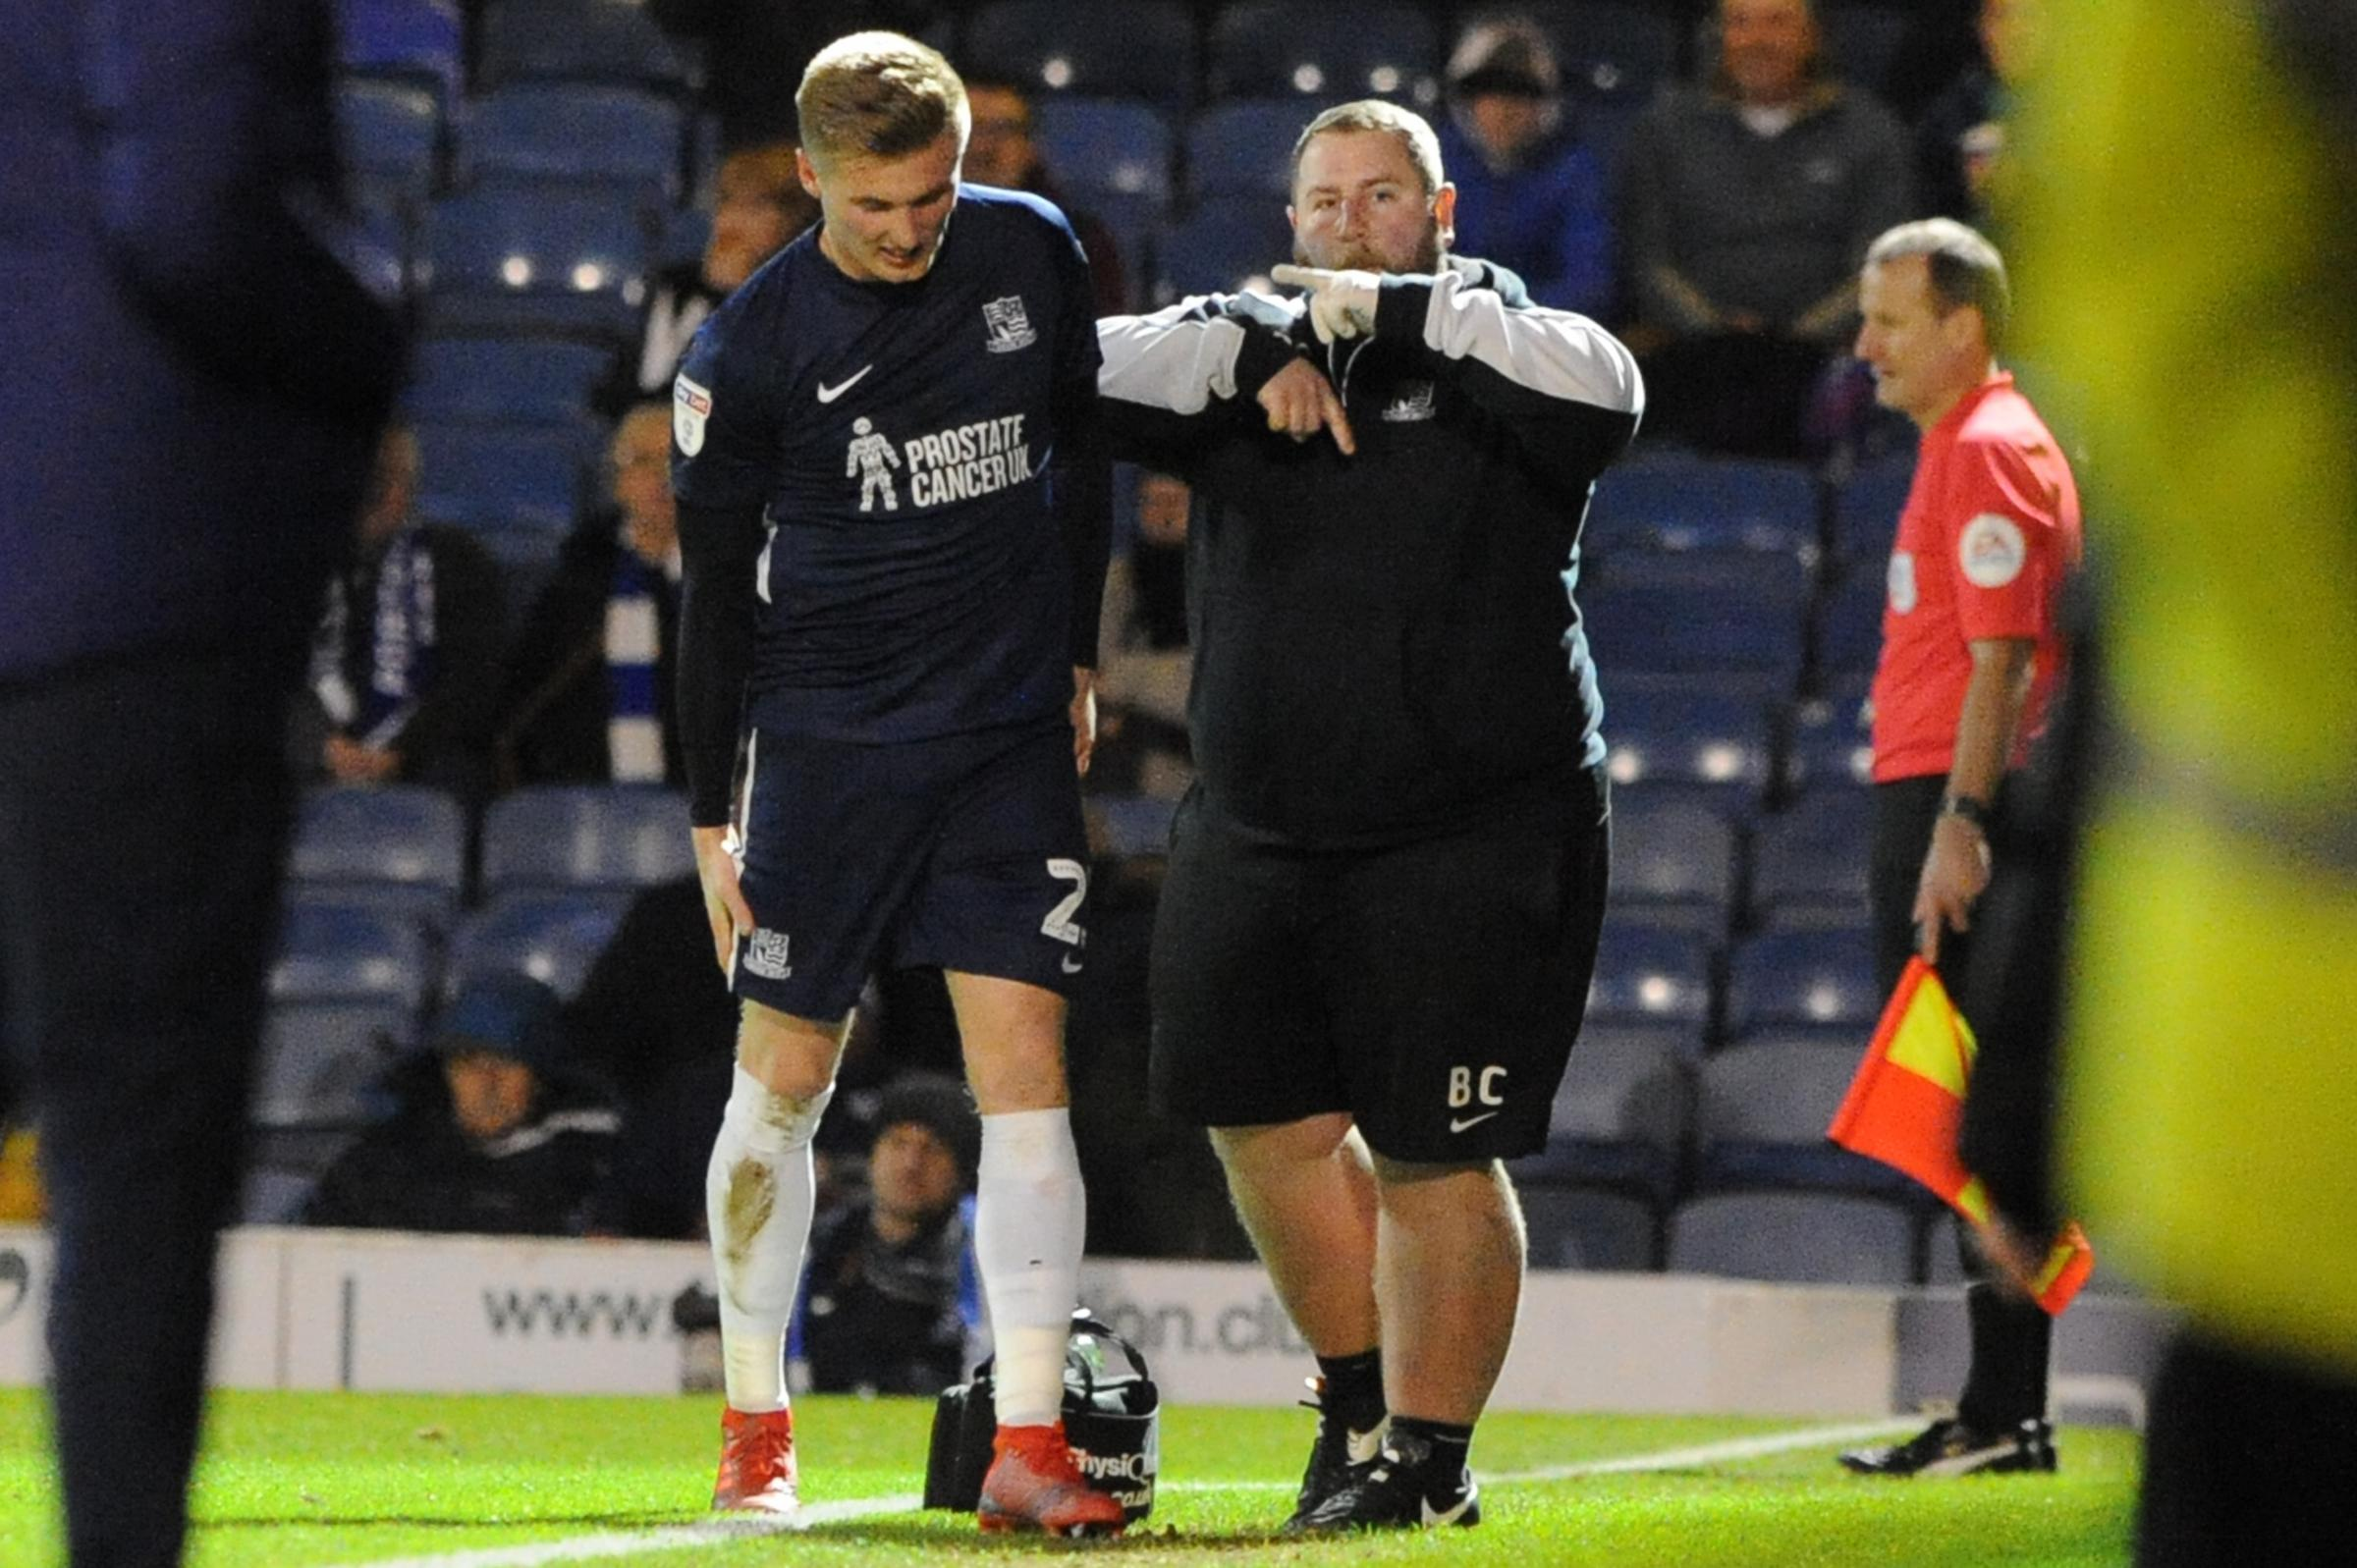 Injured - Southend United defender Taylor Moore